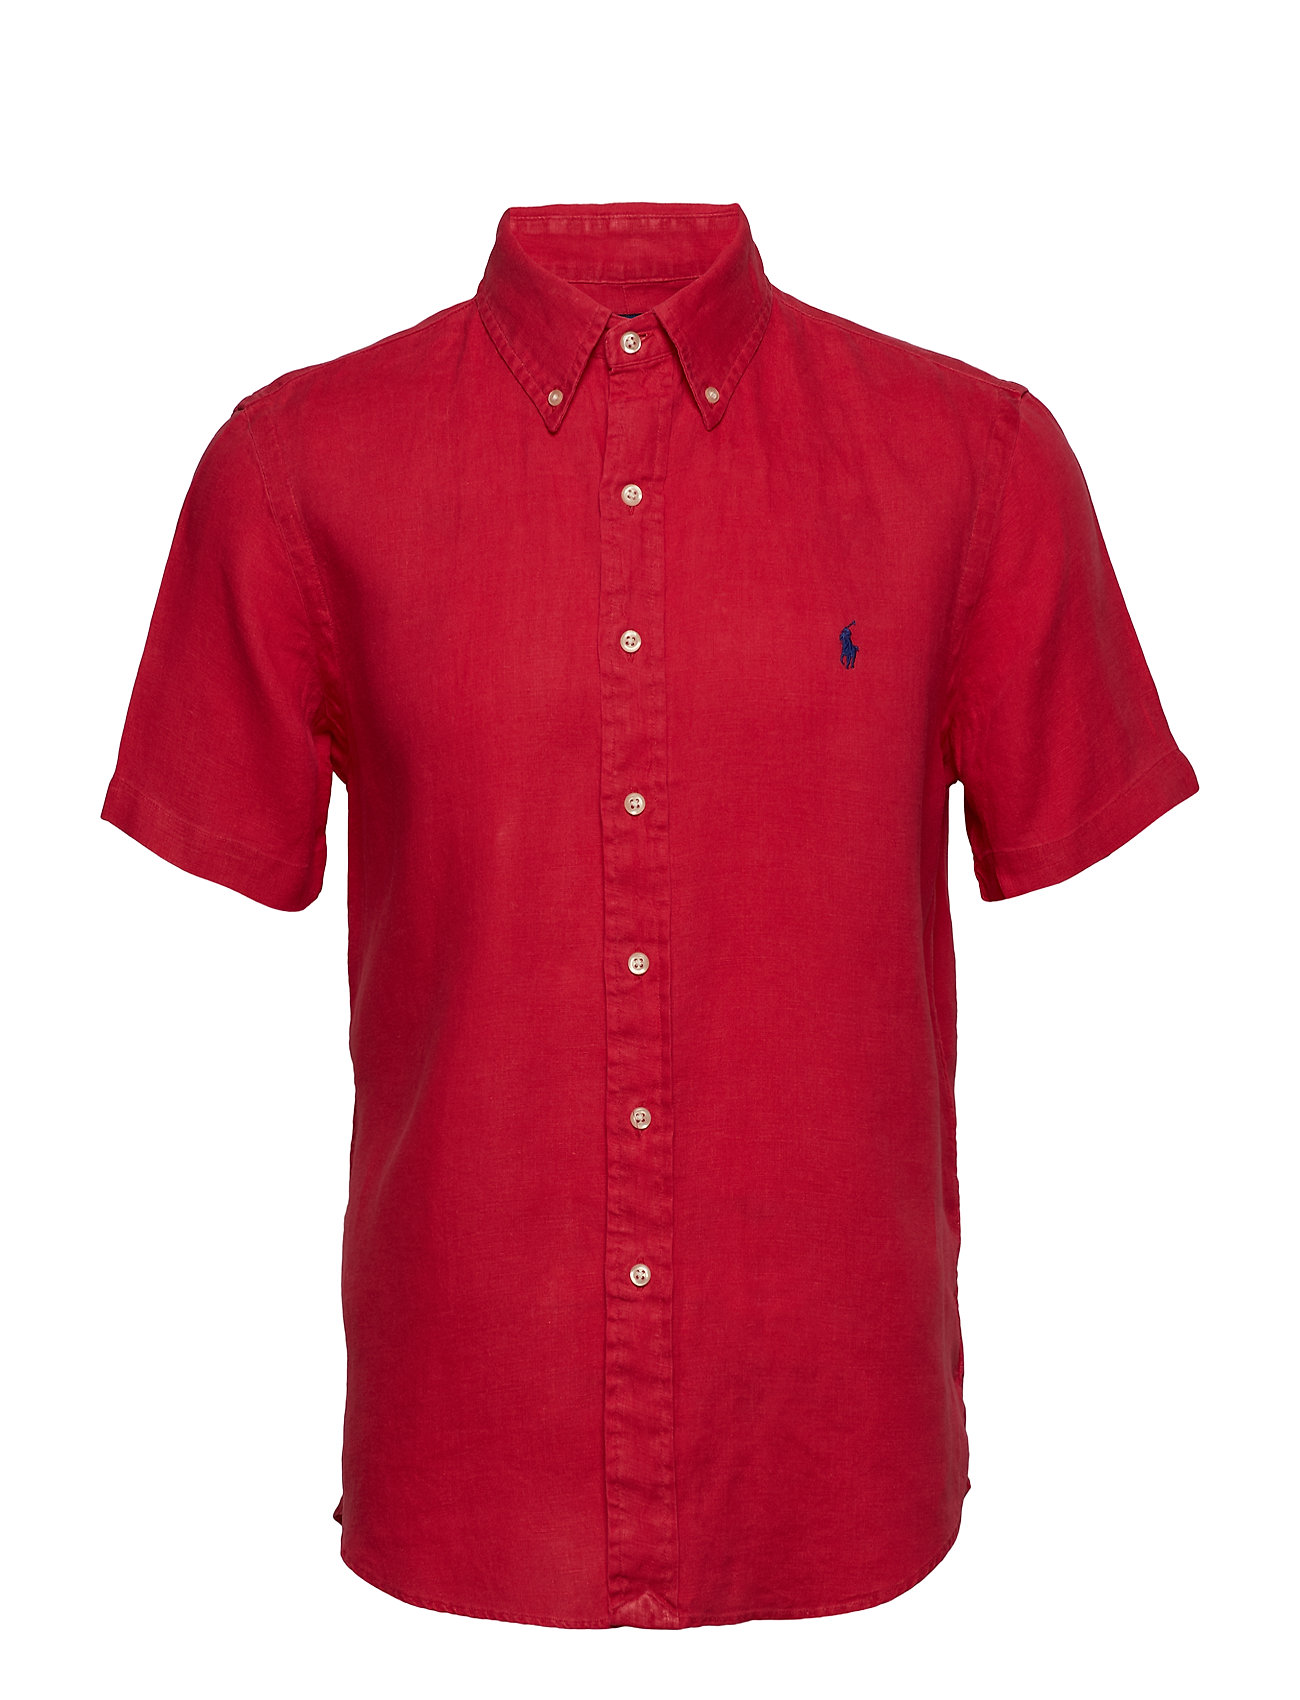 Polo Ralph Lauren Classic Fit Linen Shirt - BERMUDA RED